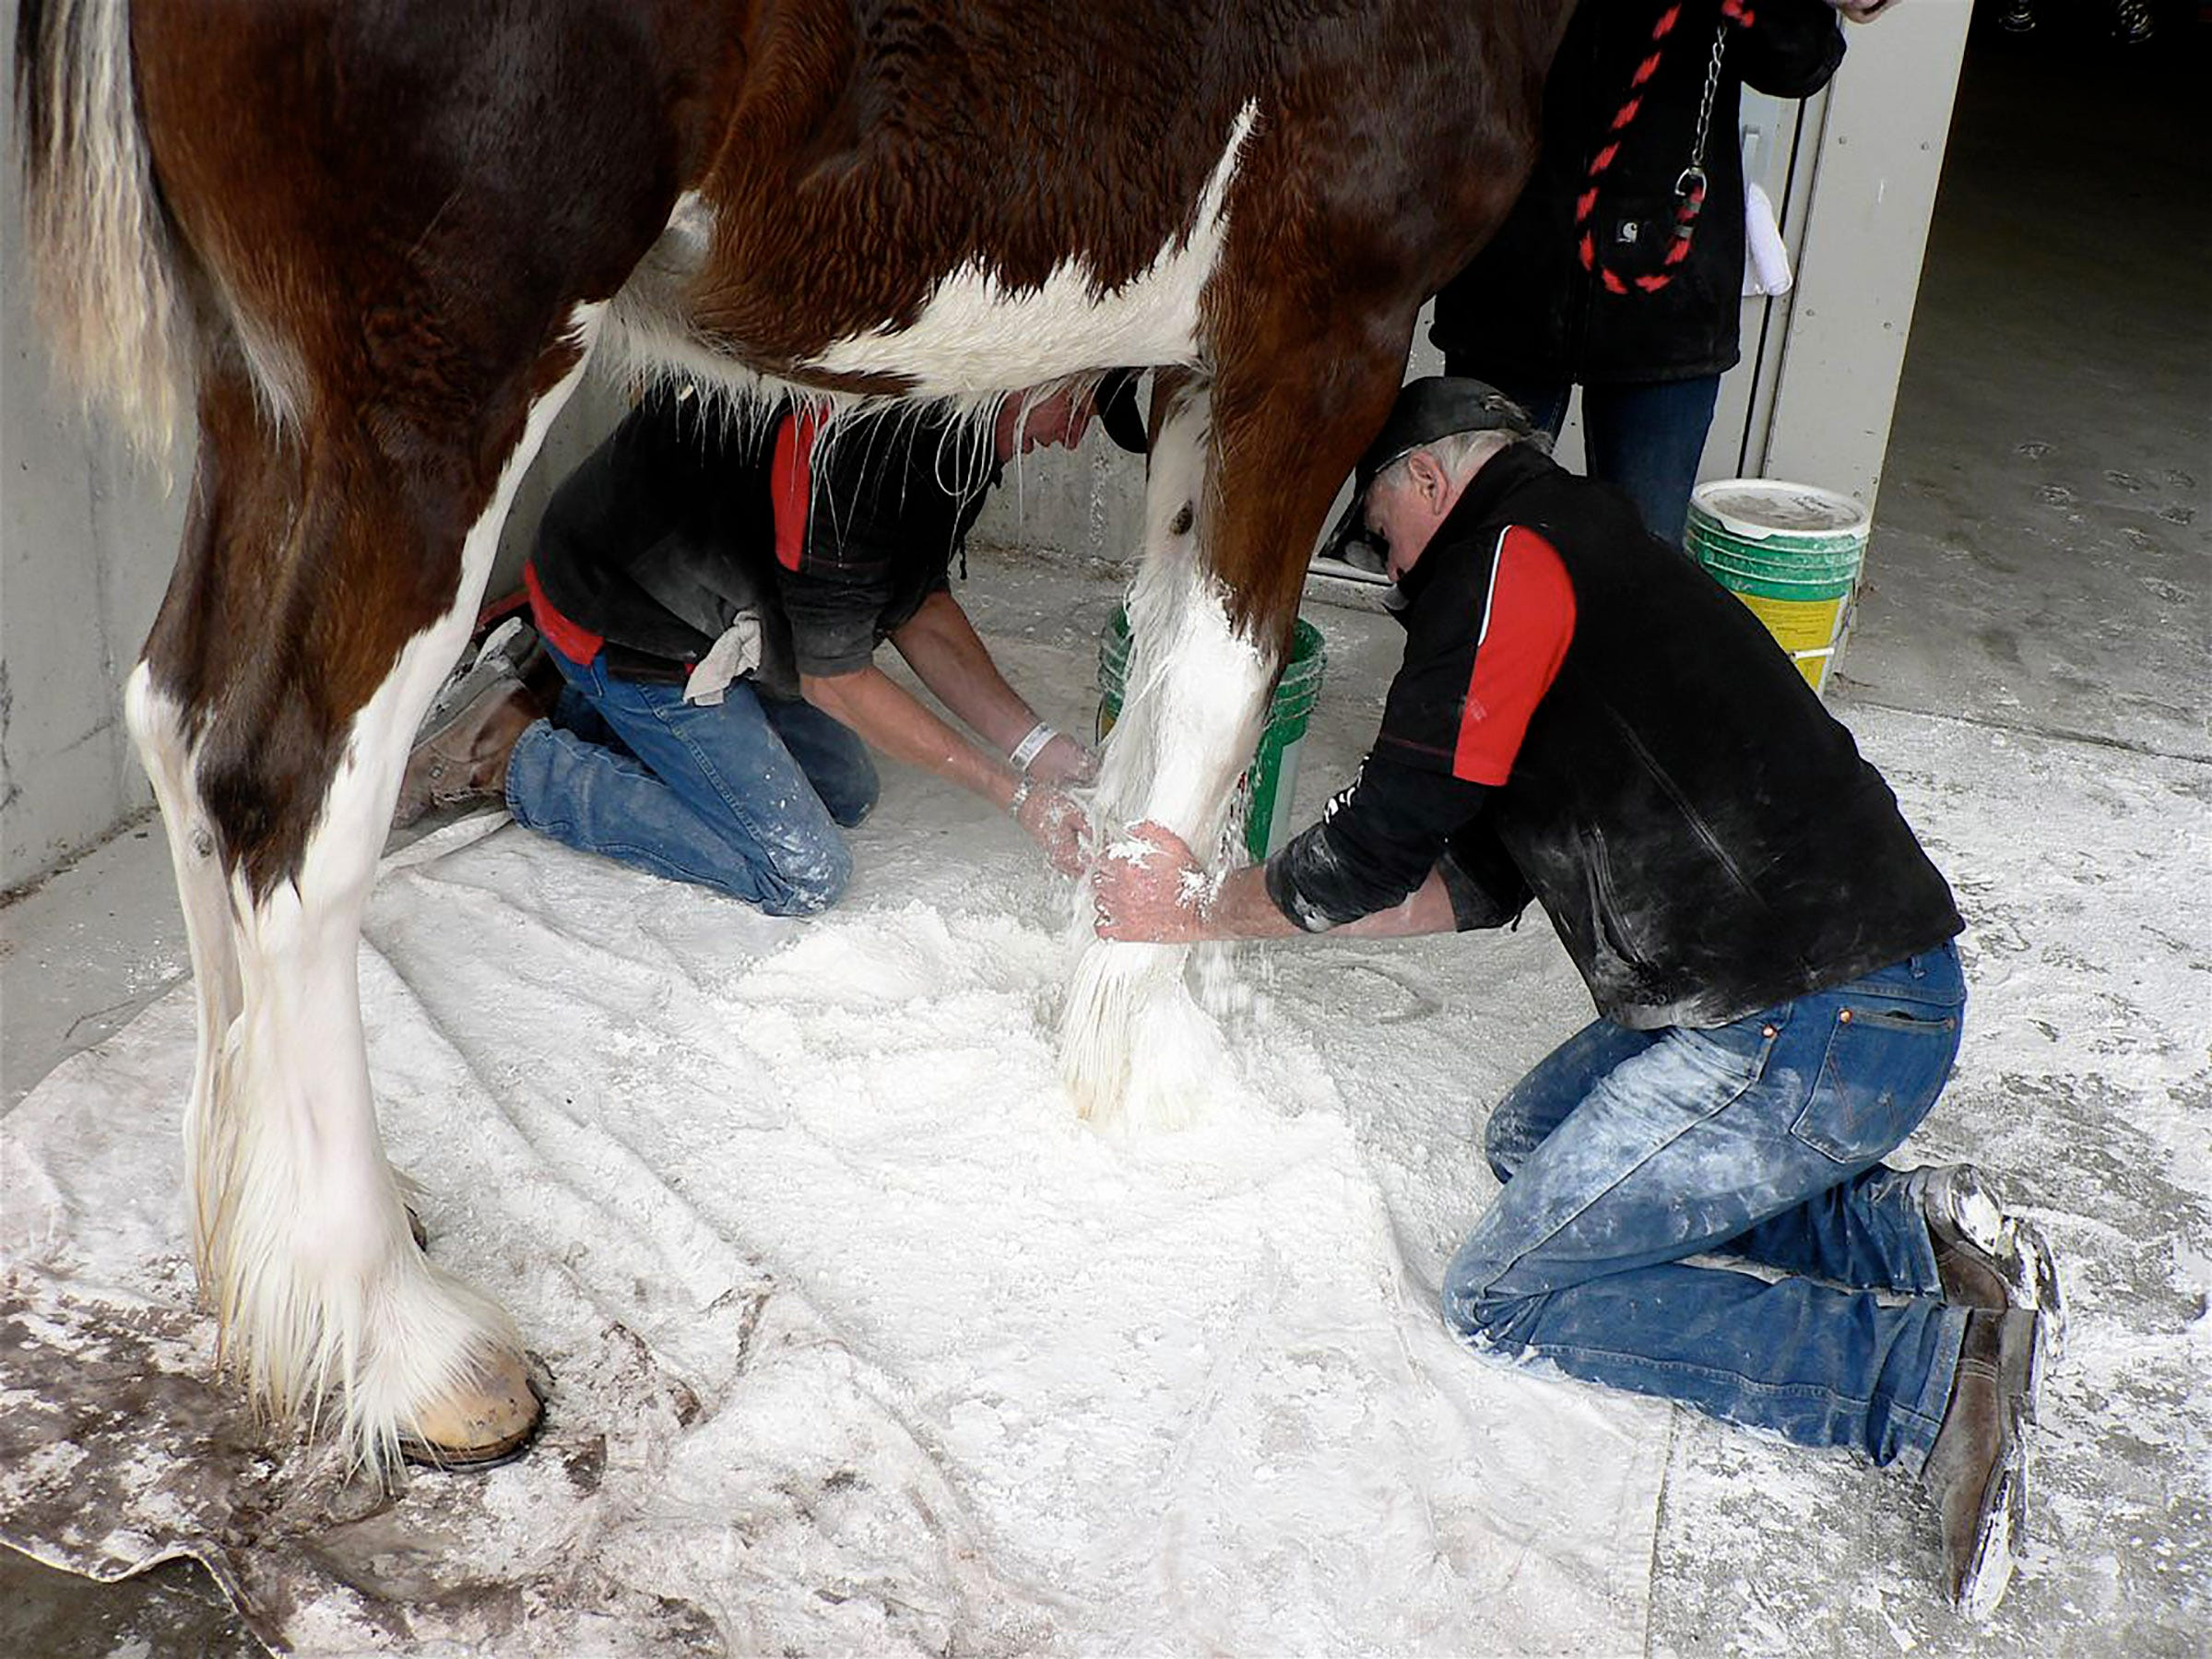 Cornstarch helps dry the long hair on the legs and makes it whiter in color after the horse is washed.